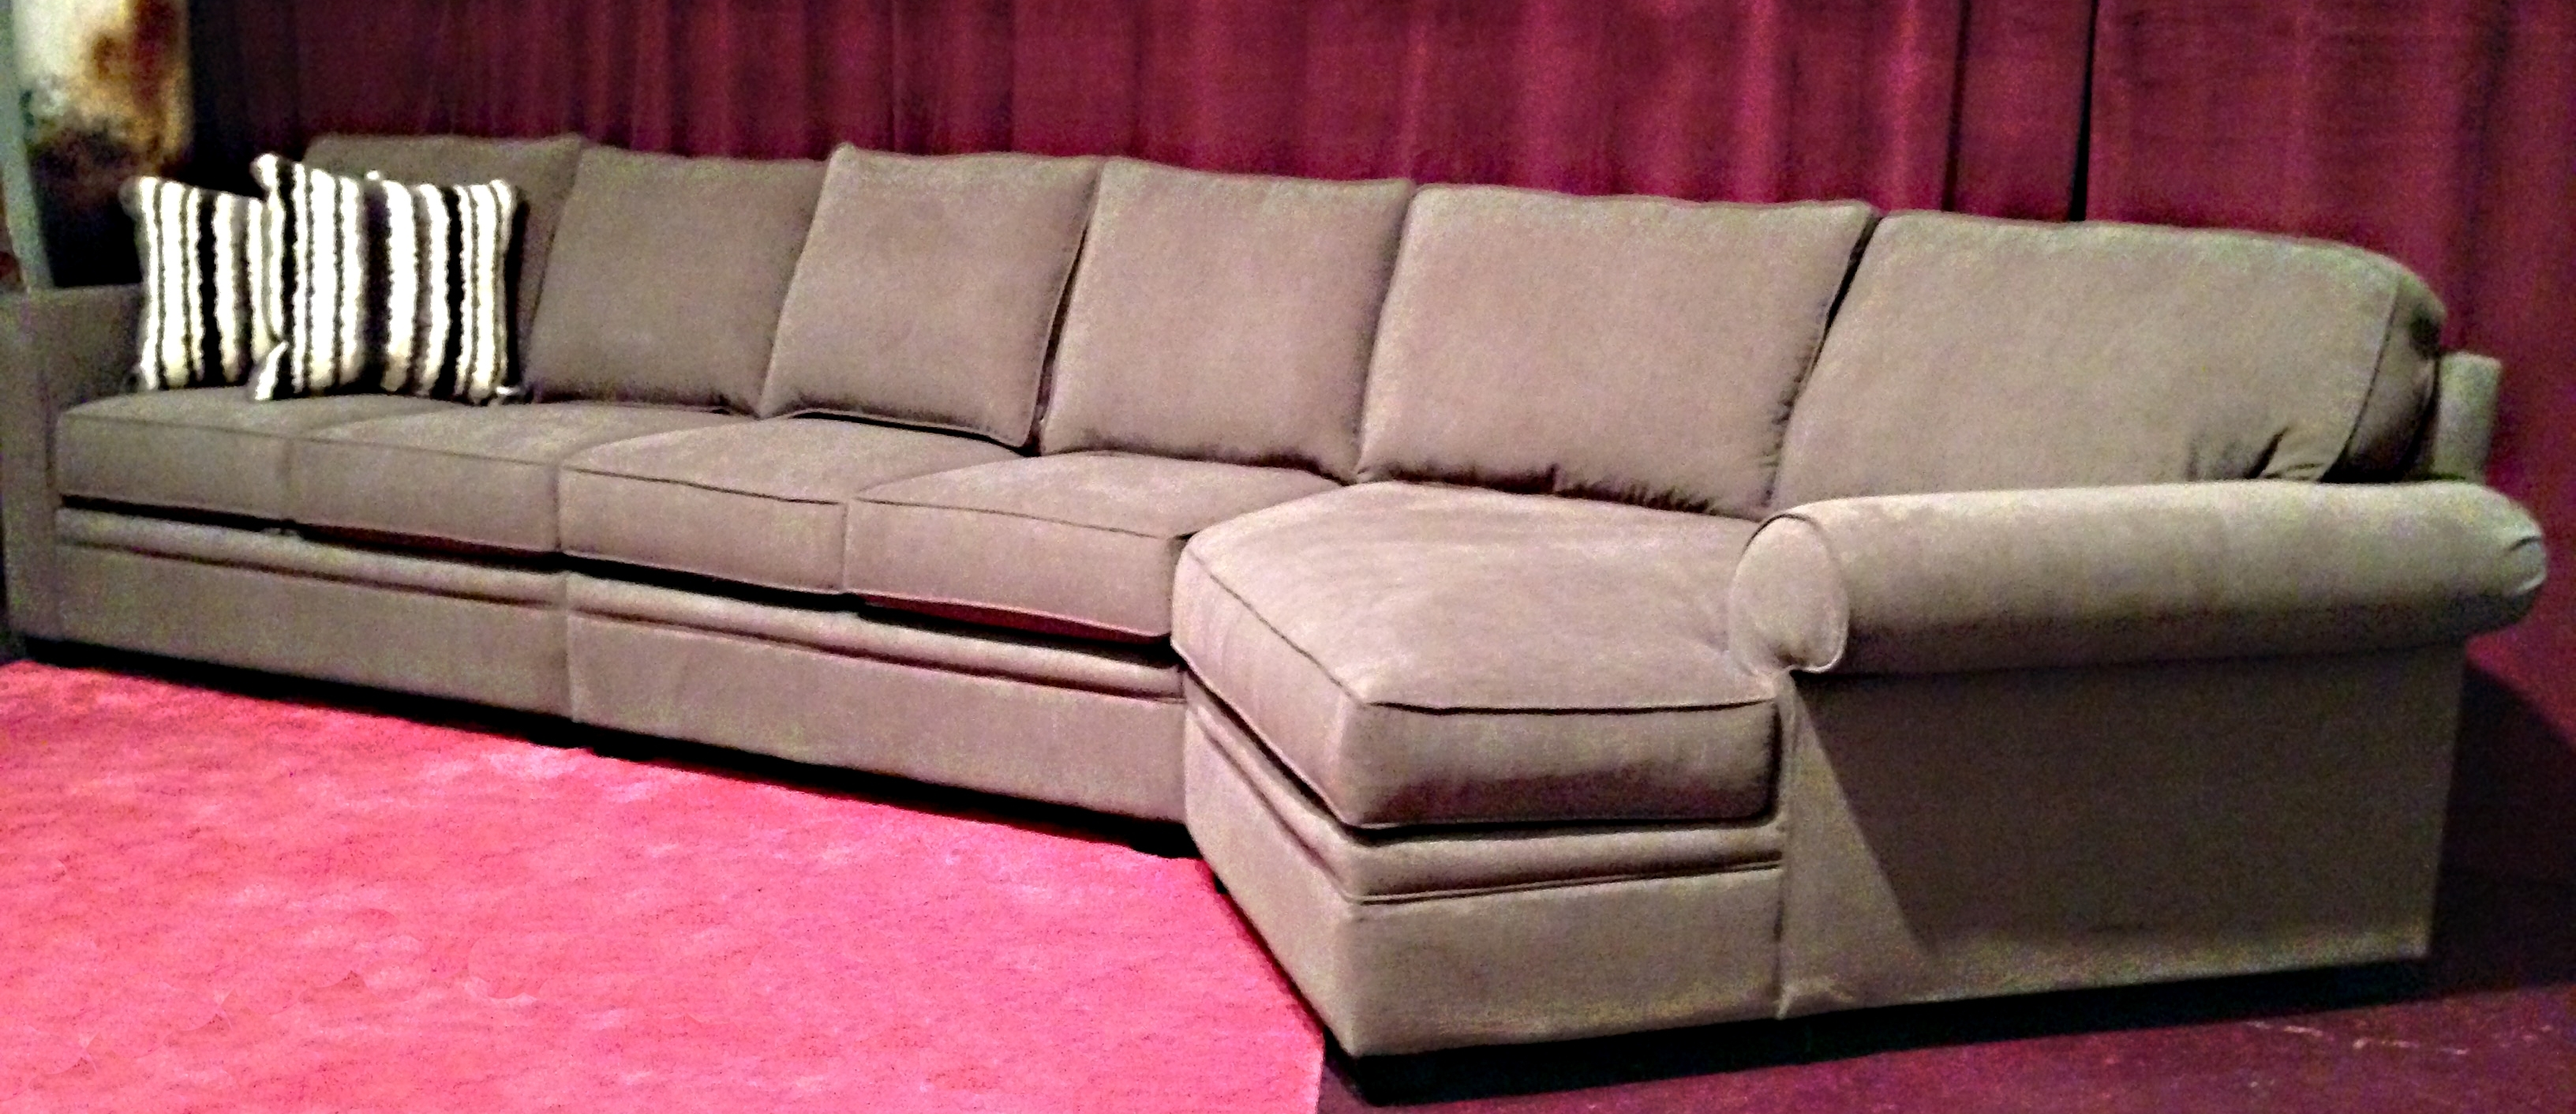 Furniture Extra Large Sofa Oversized Couch Deep Cushion Couch From In Preferred Deep Cushion Sofas (View 11 of 20)